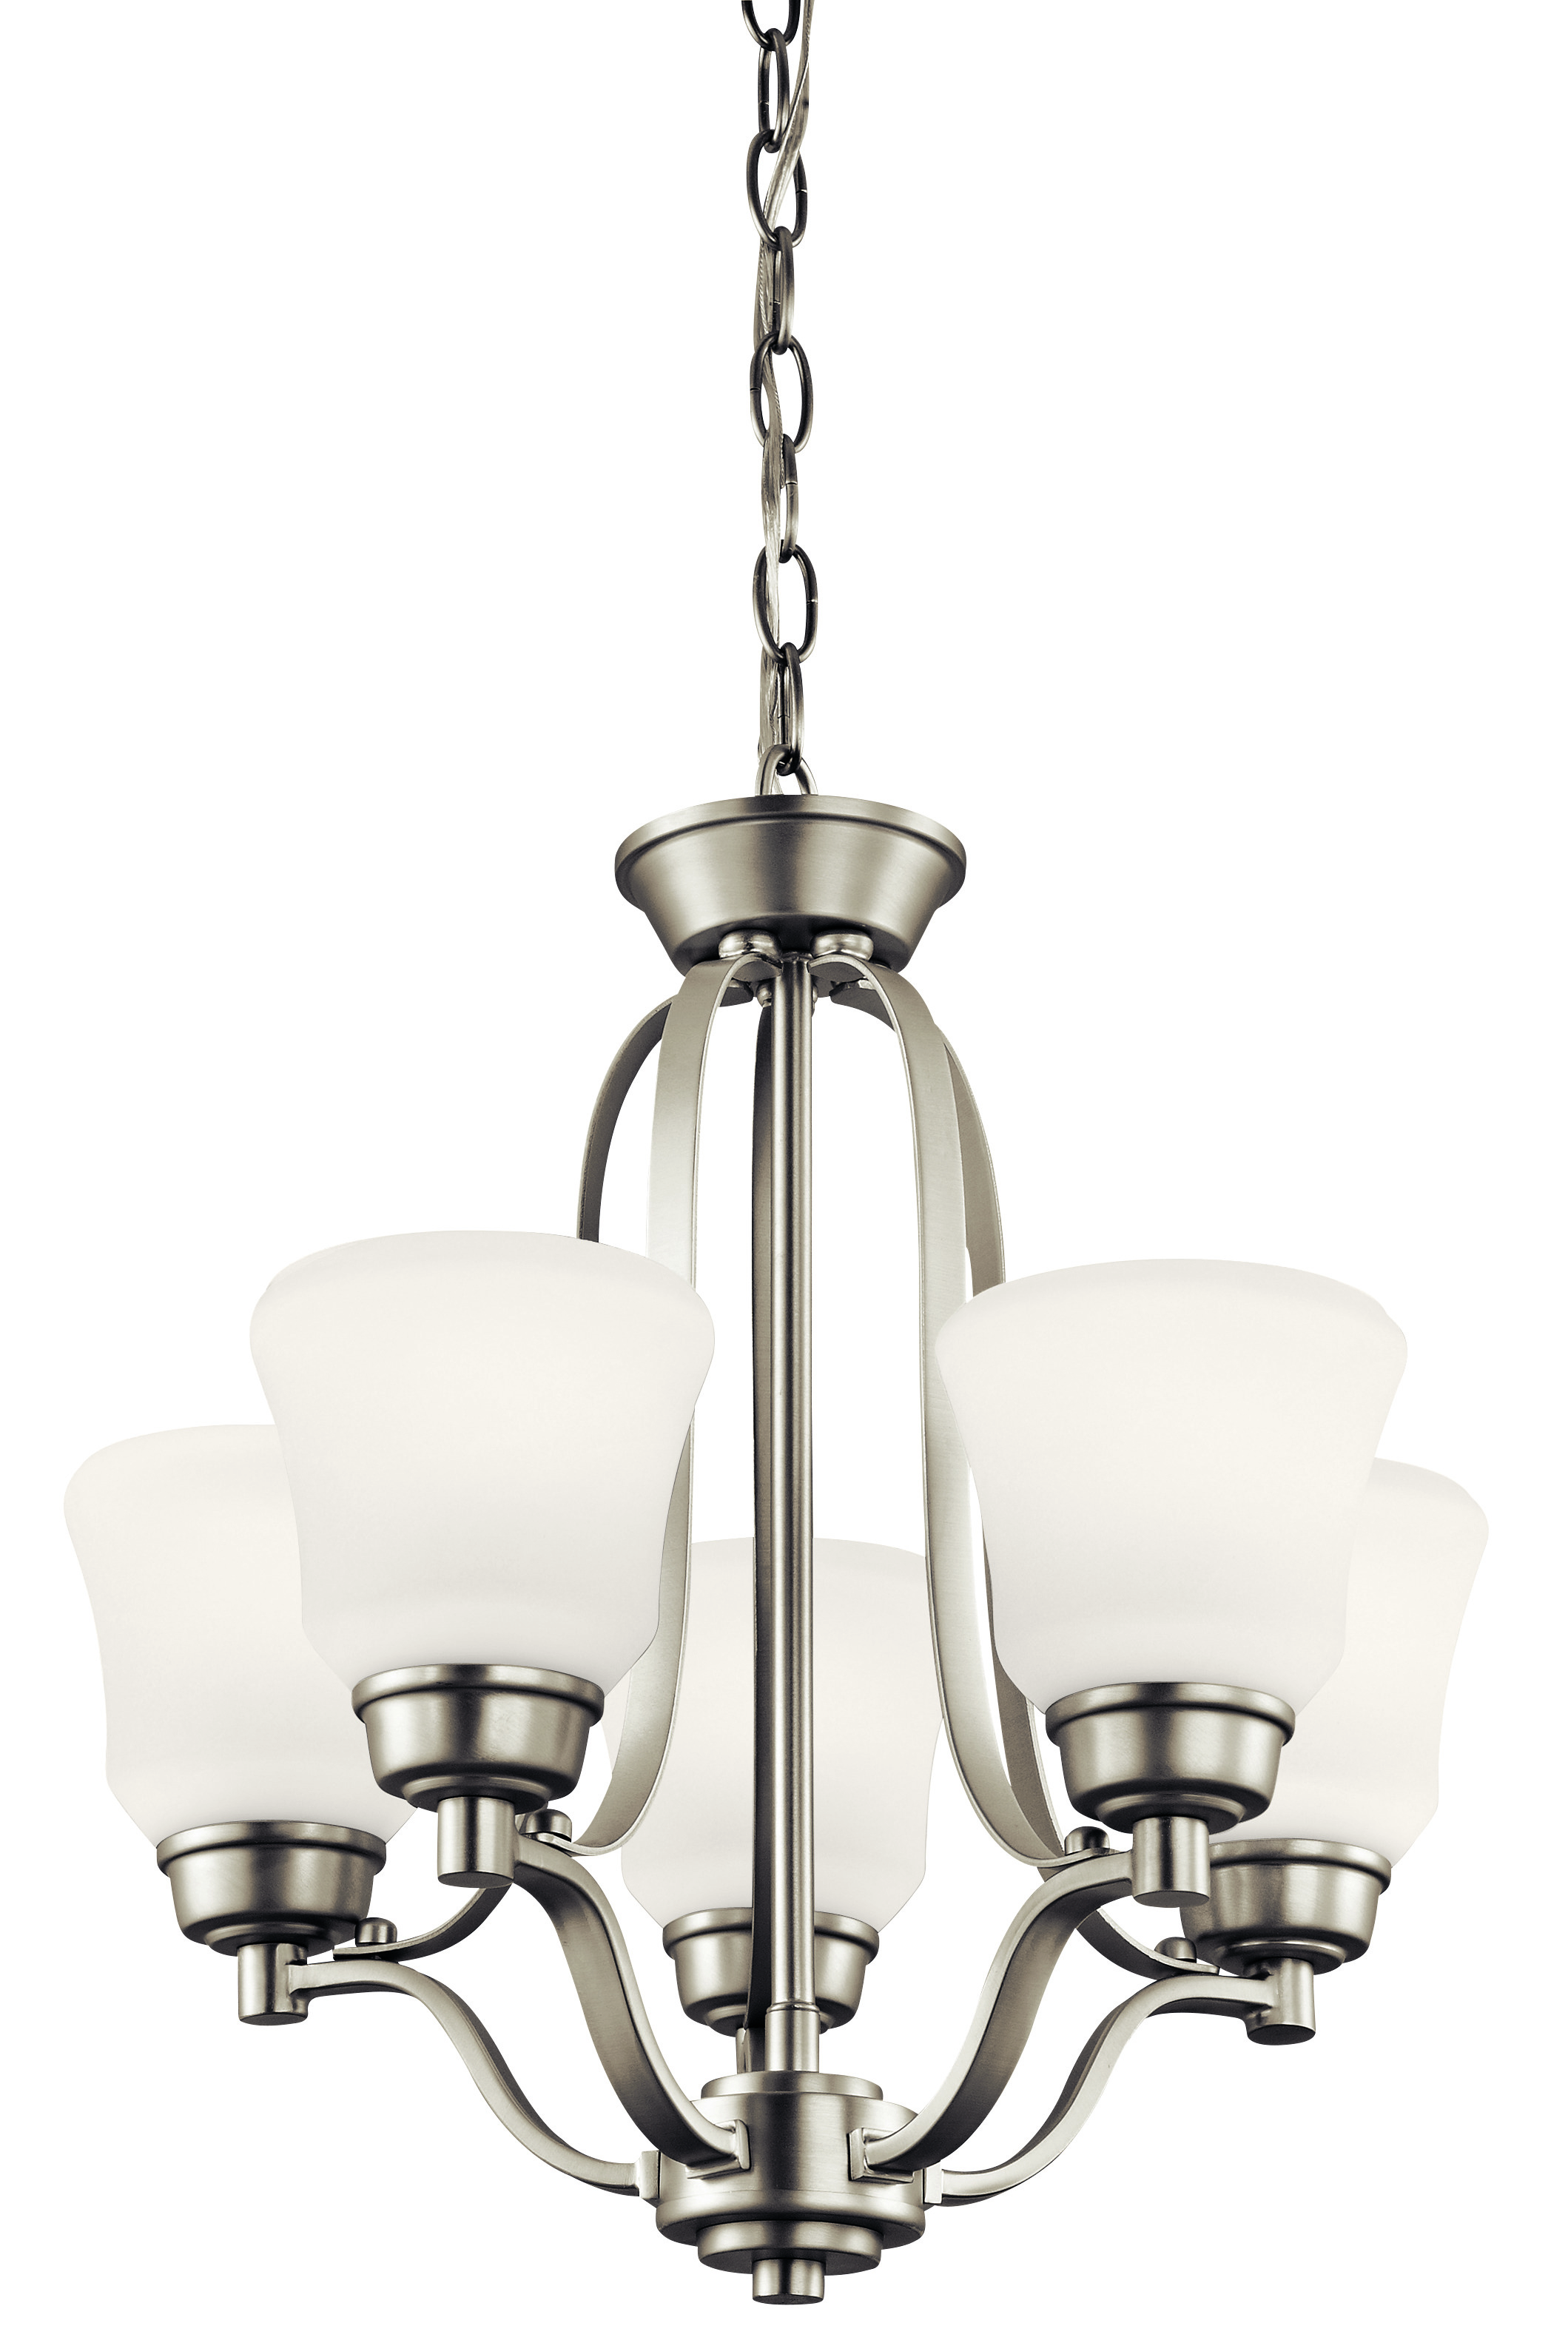 Kichler Langford LED Chandelier with Satin Etched White Shade - Brushed Nickel (1788NIL16)